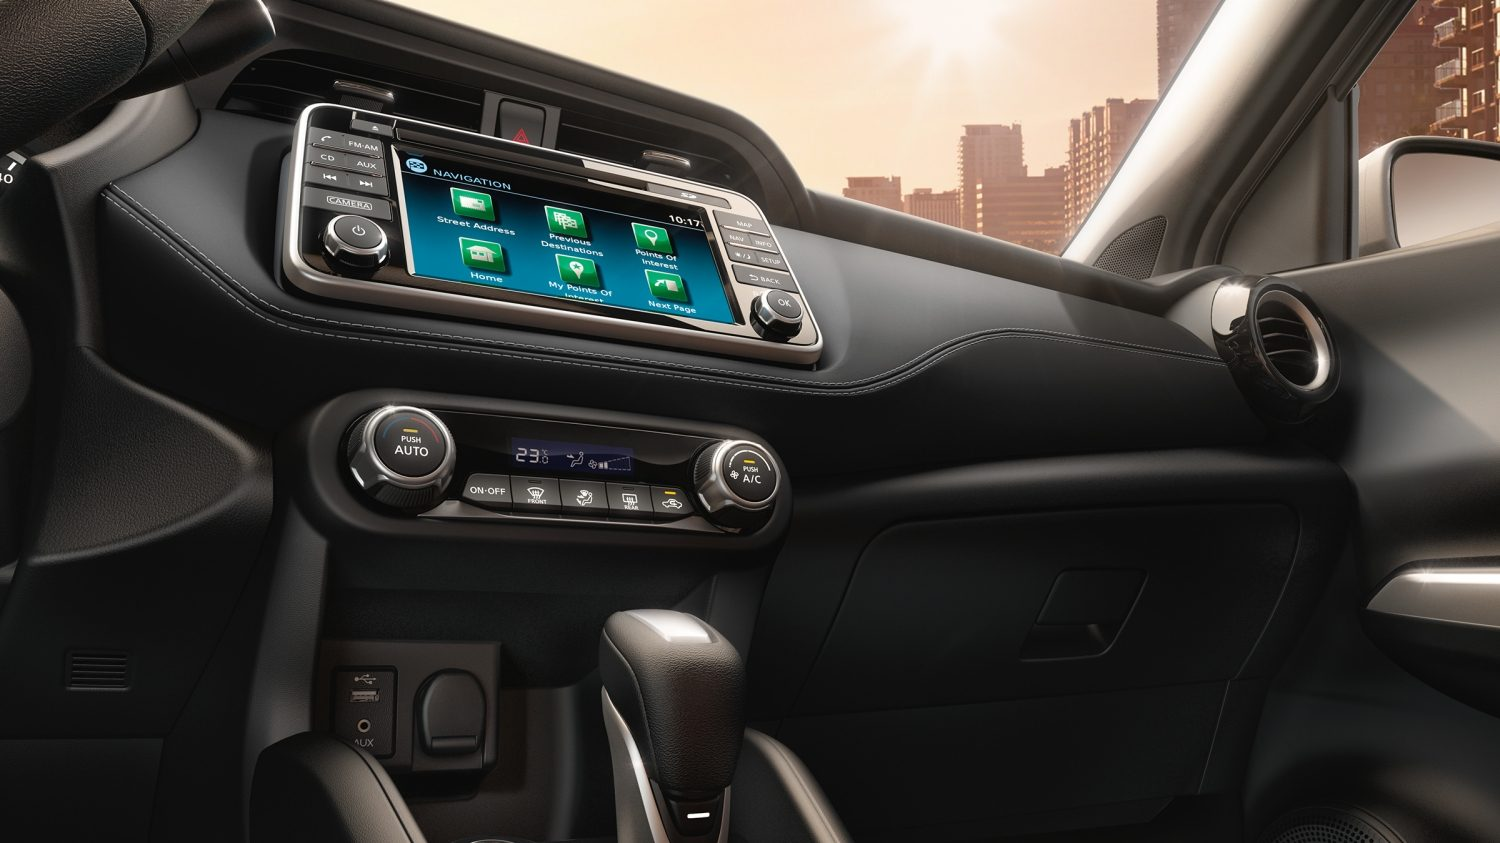 Nissan Kicks instrumentation panel detail